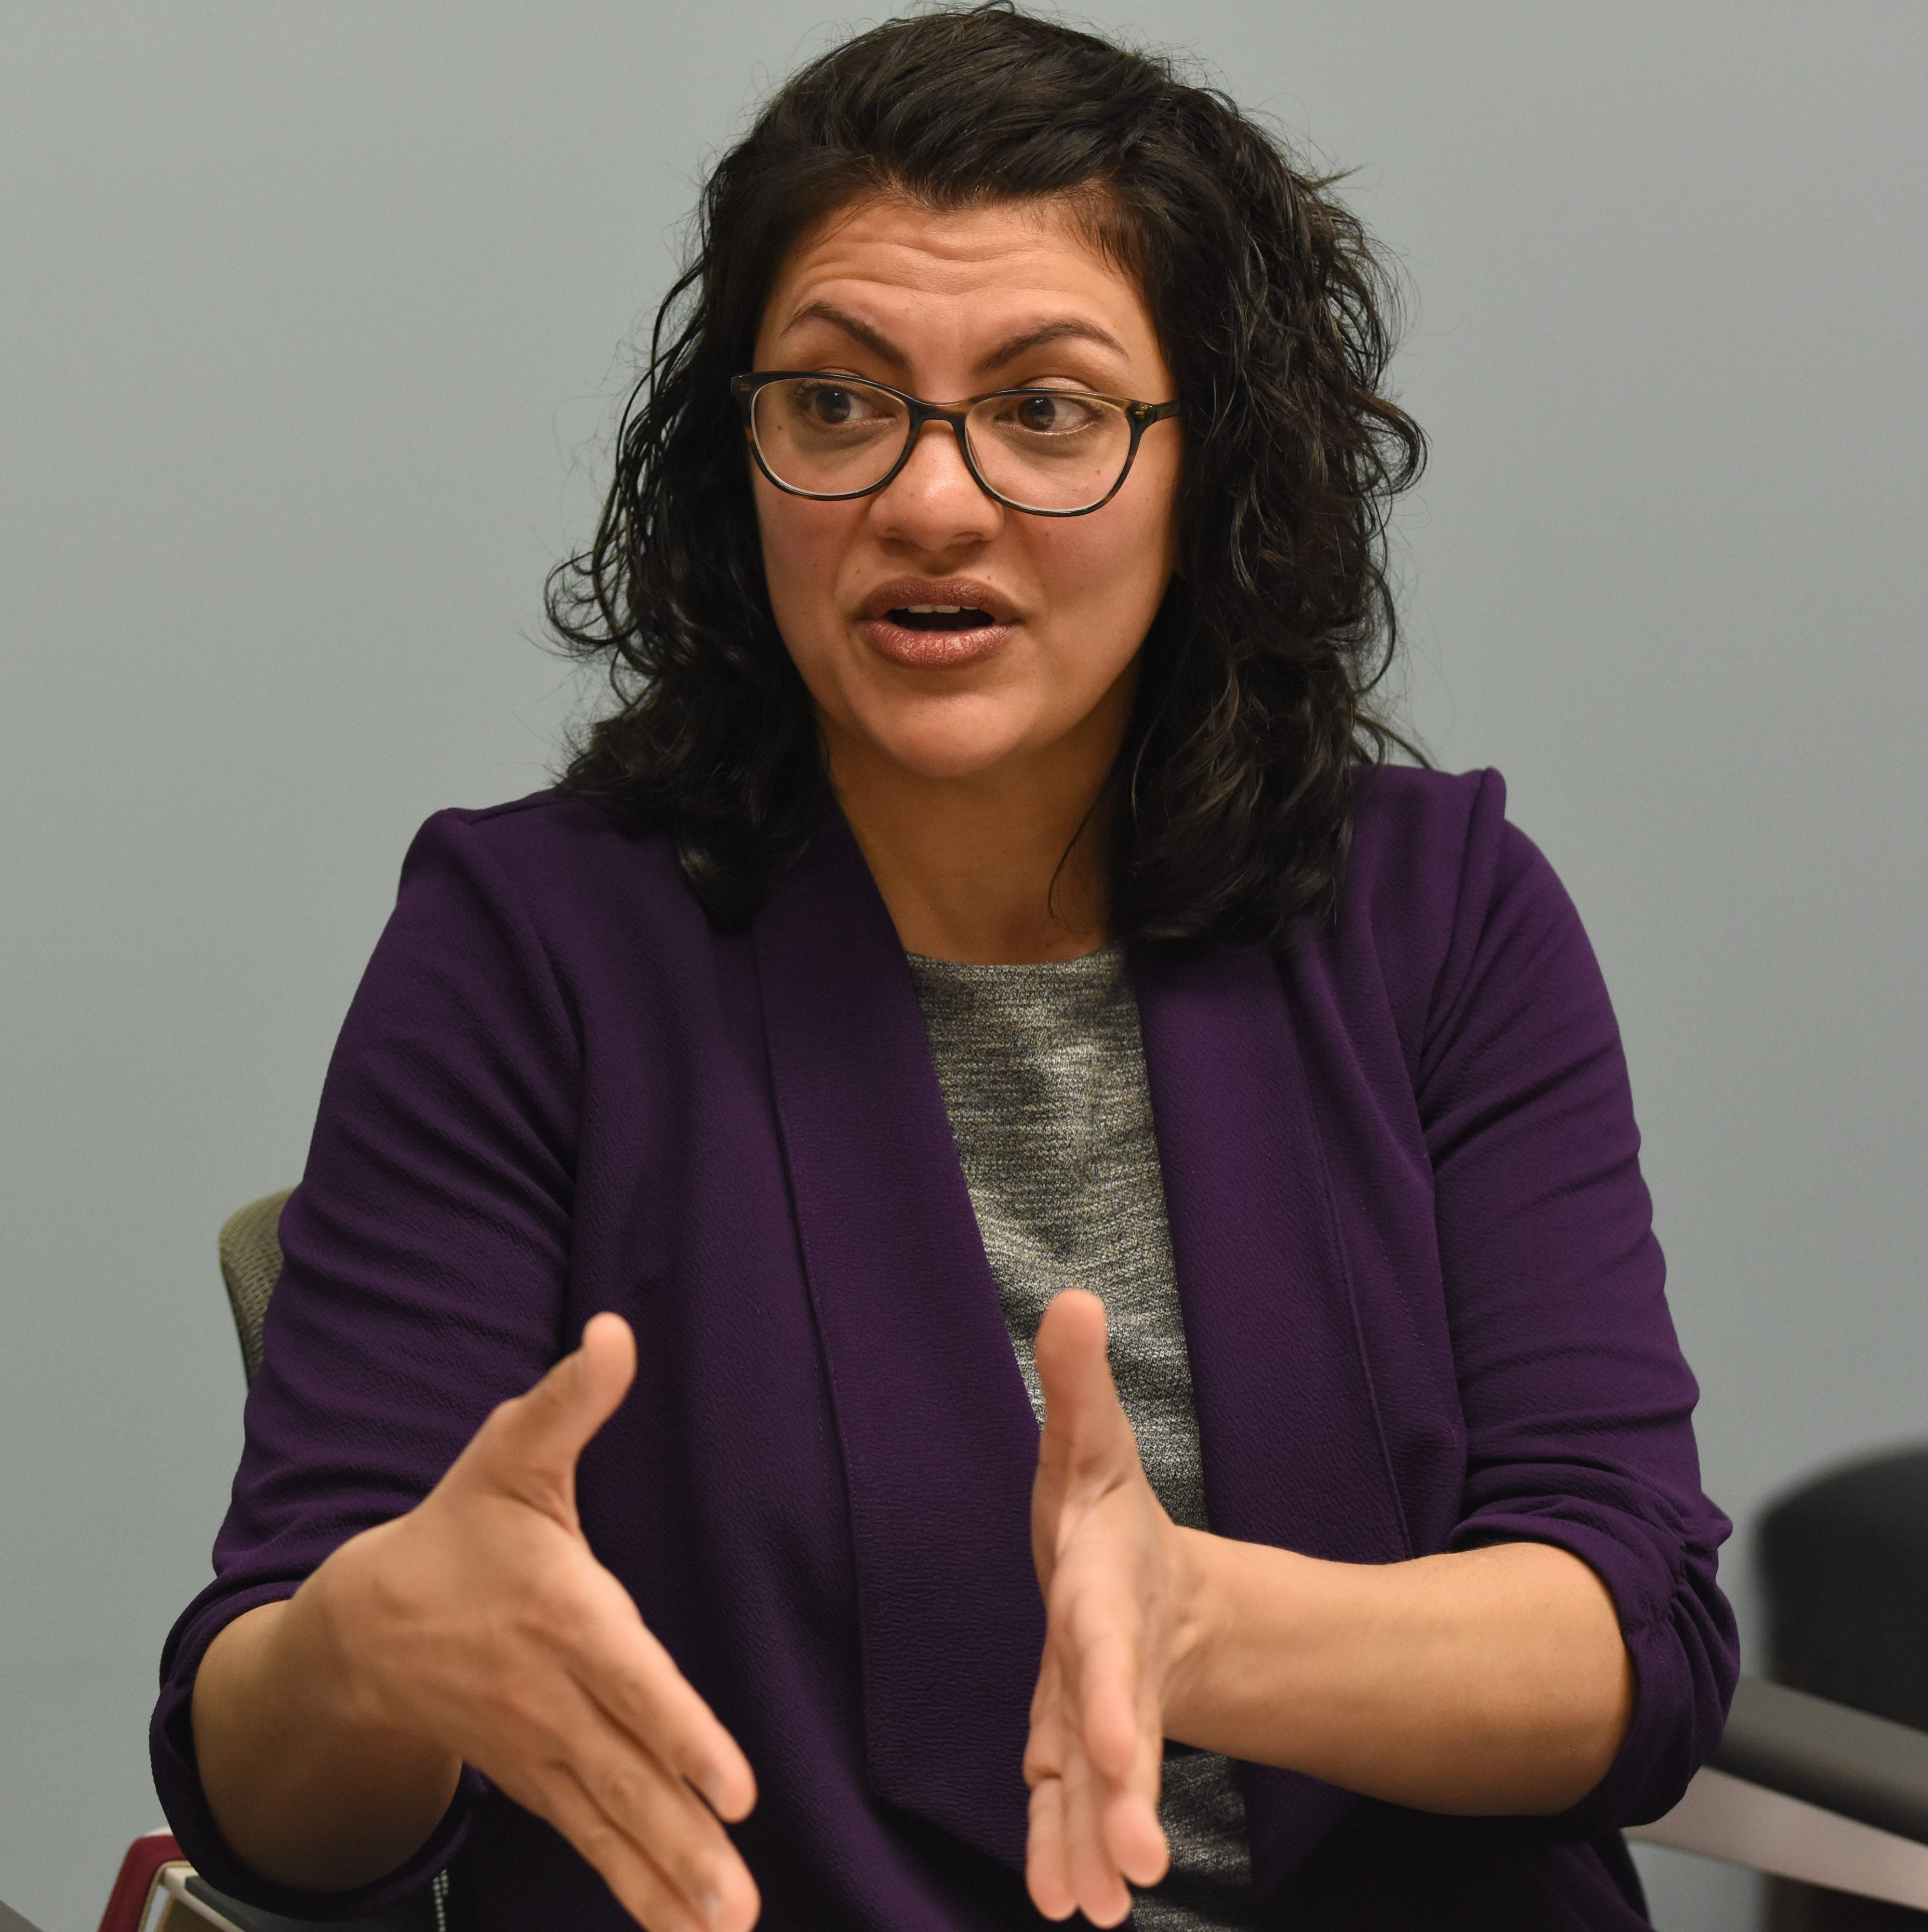 Tlaib denounces anti-Semitism while calling on Israel to 'do better'